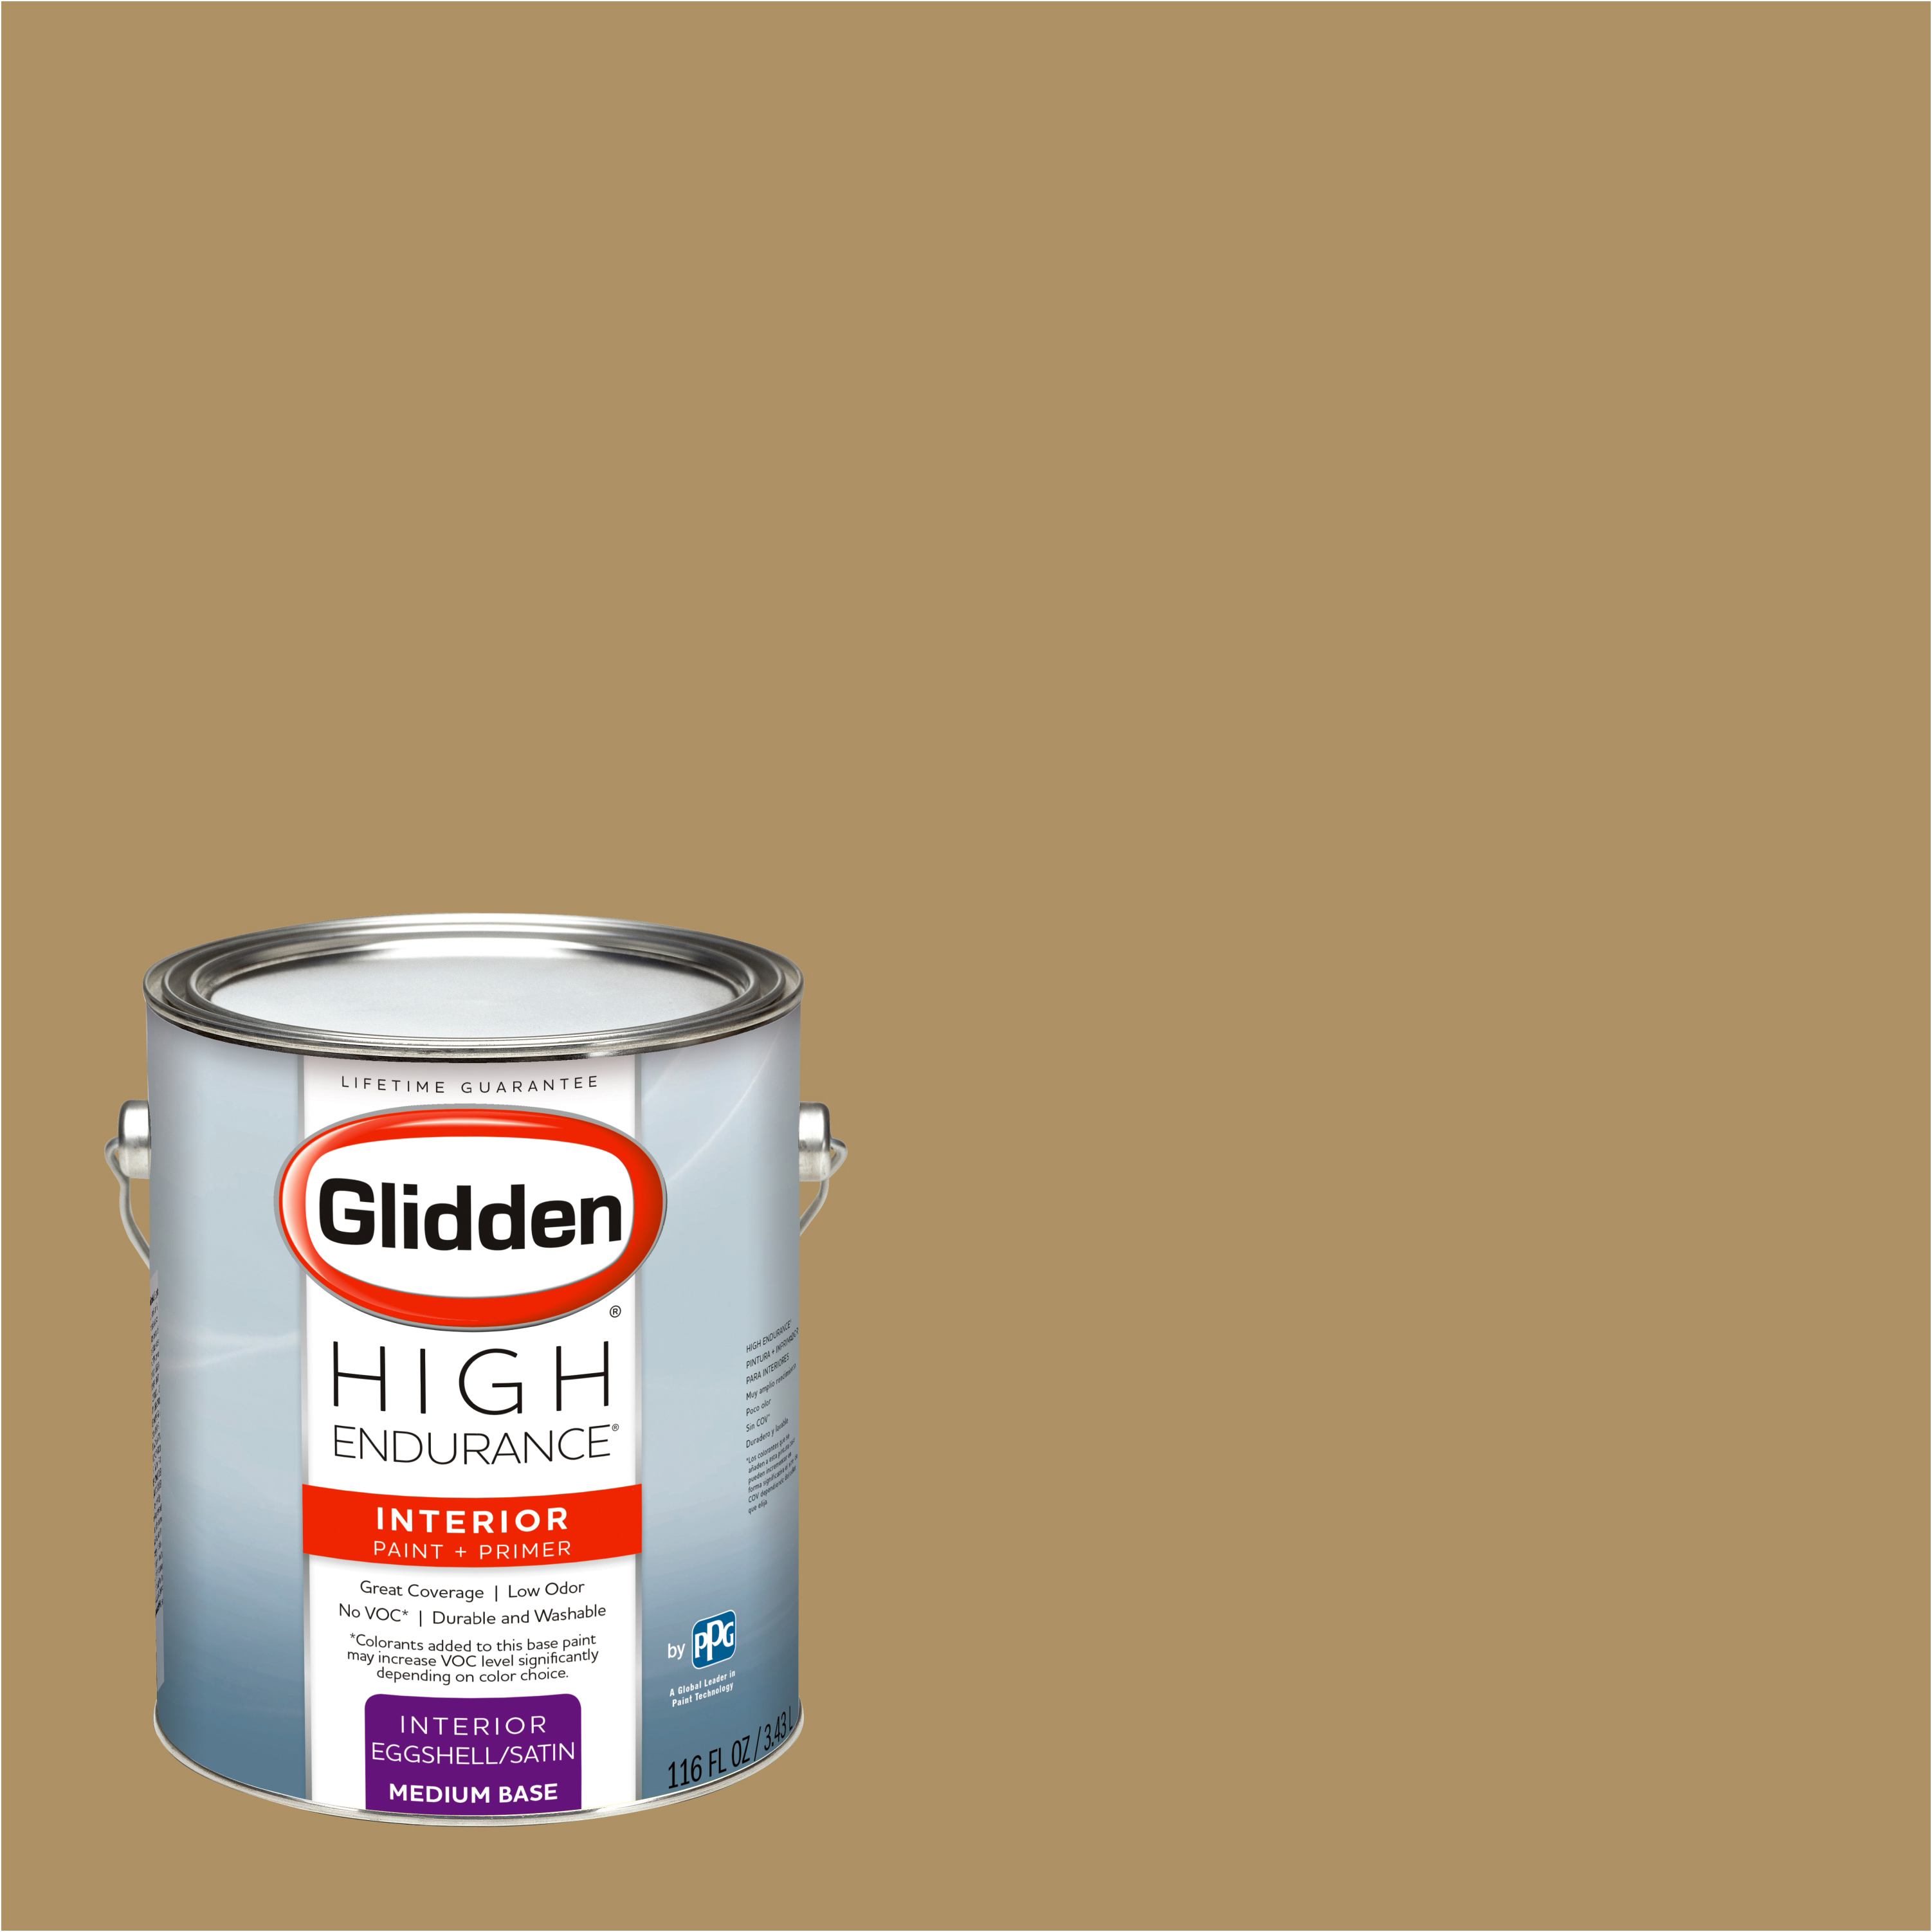 Glidden High Endurance, Interior Paint and Primer, Tradition Gold, #20YY 30/274